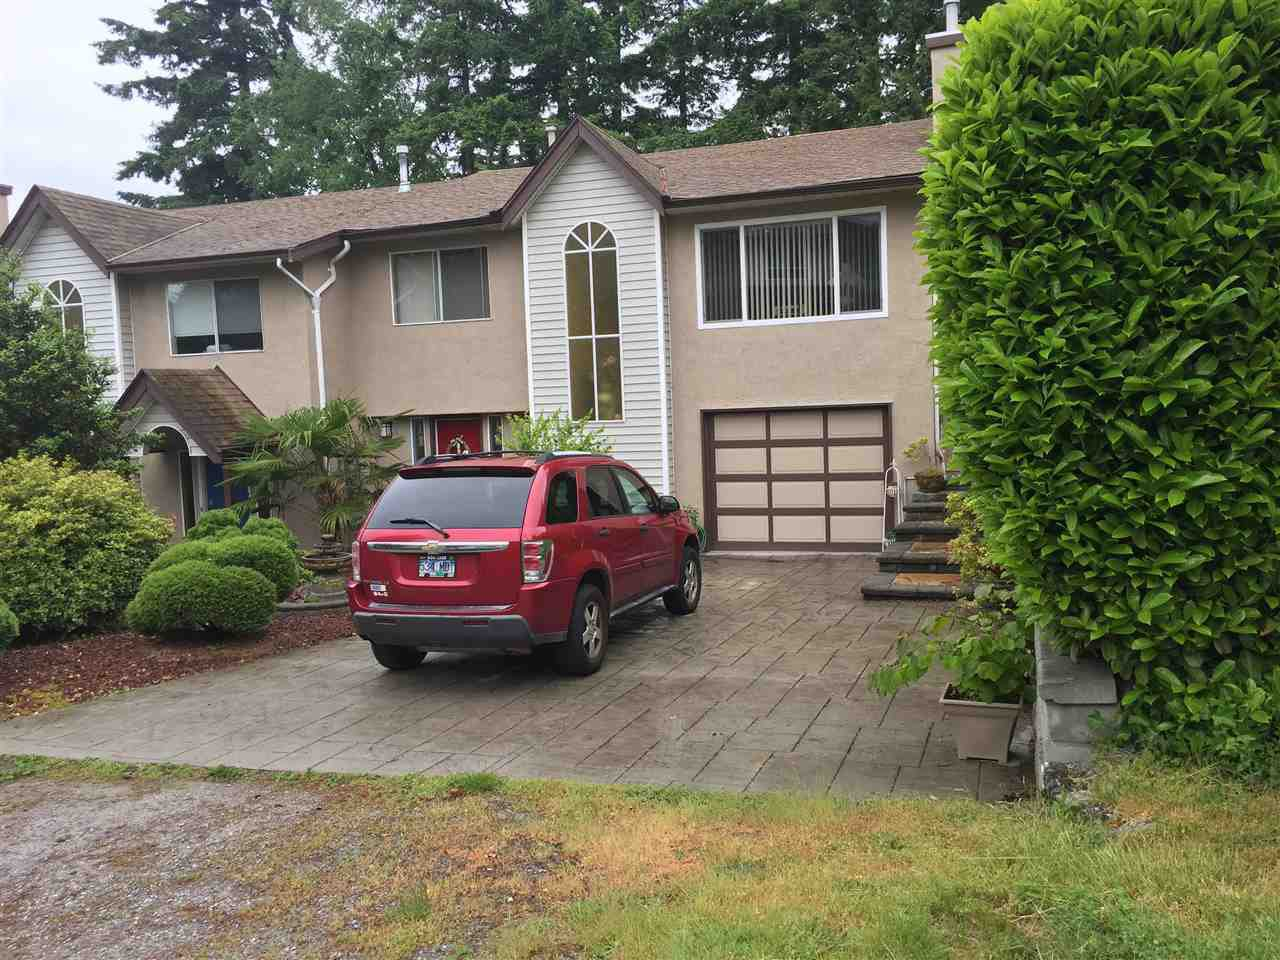 Photo 2: Photos: 1445 VIDAL Street: White Rock House 1/2 Duplex for sale (South Surrey White Rock)  : MLS®# R2171728